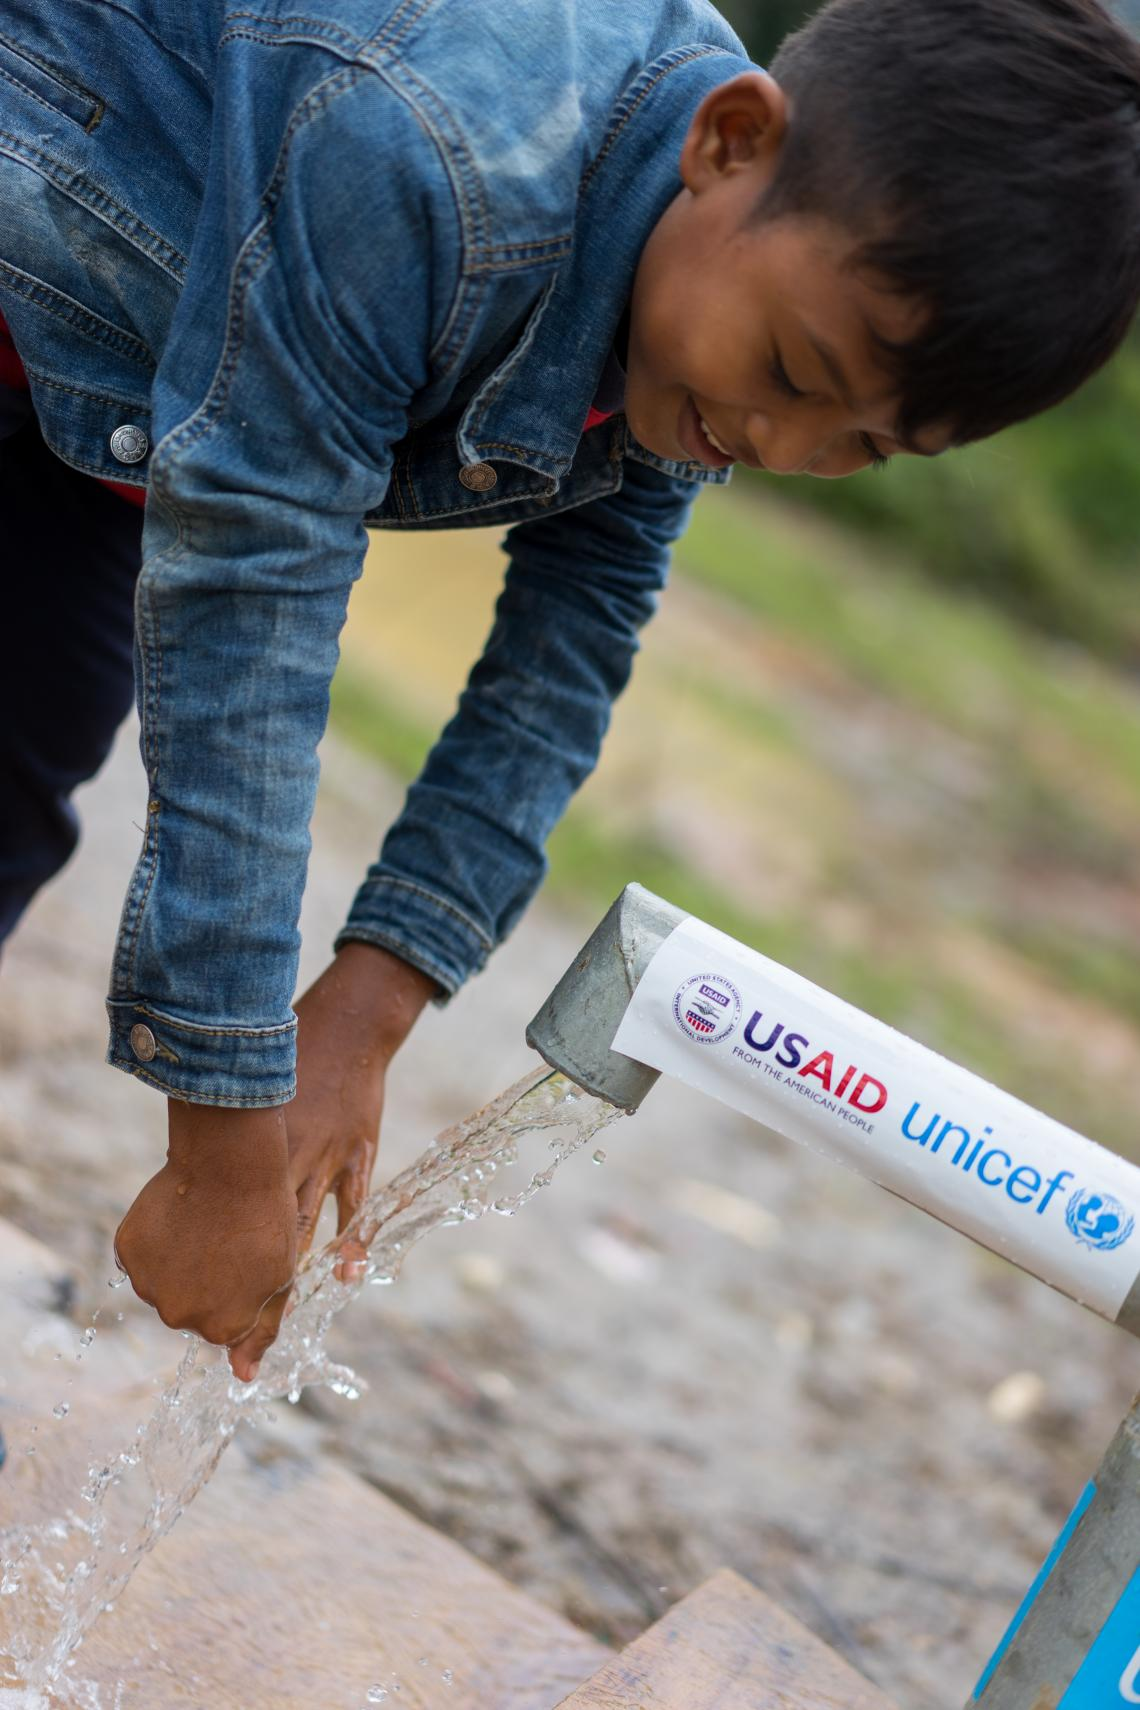 Khao Yai, 12, uses a UNICEF- and USAID-supported tap in Ban Bok camp, Attapeu, Lao PDR.